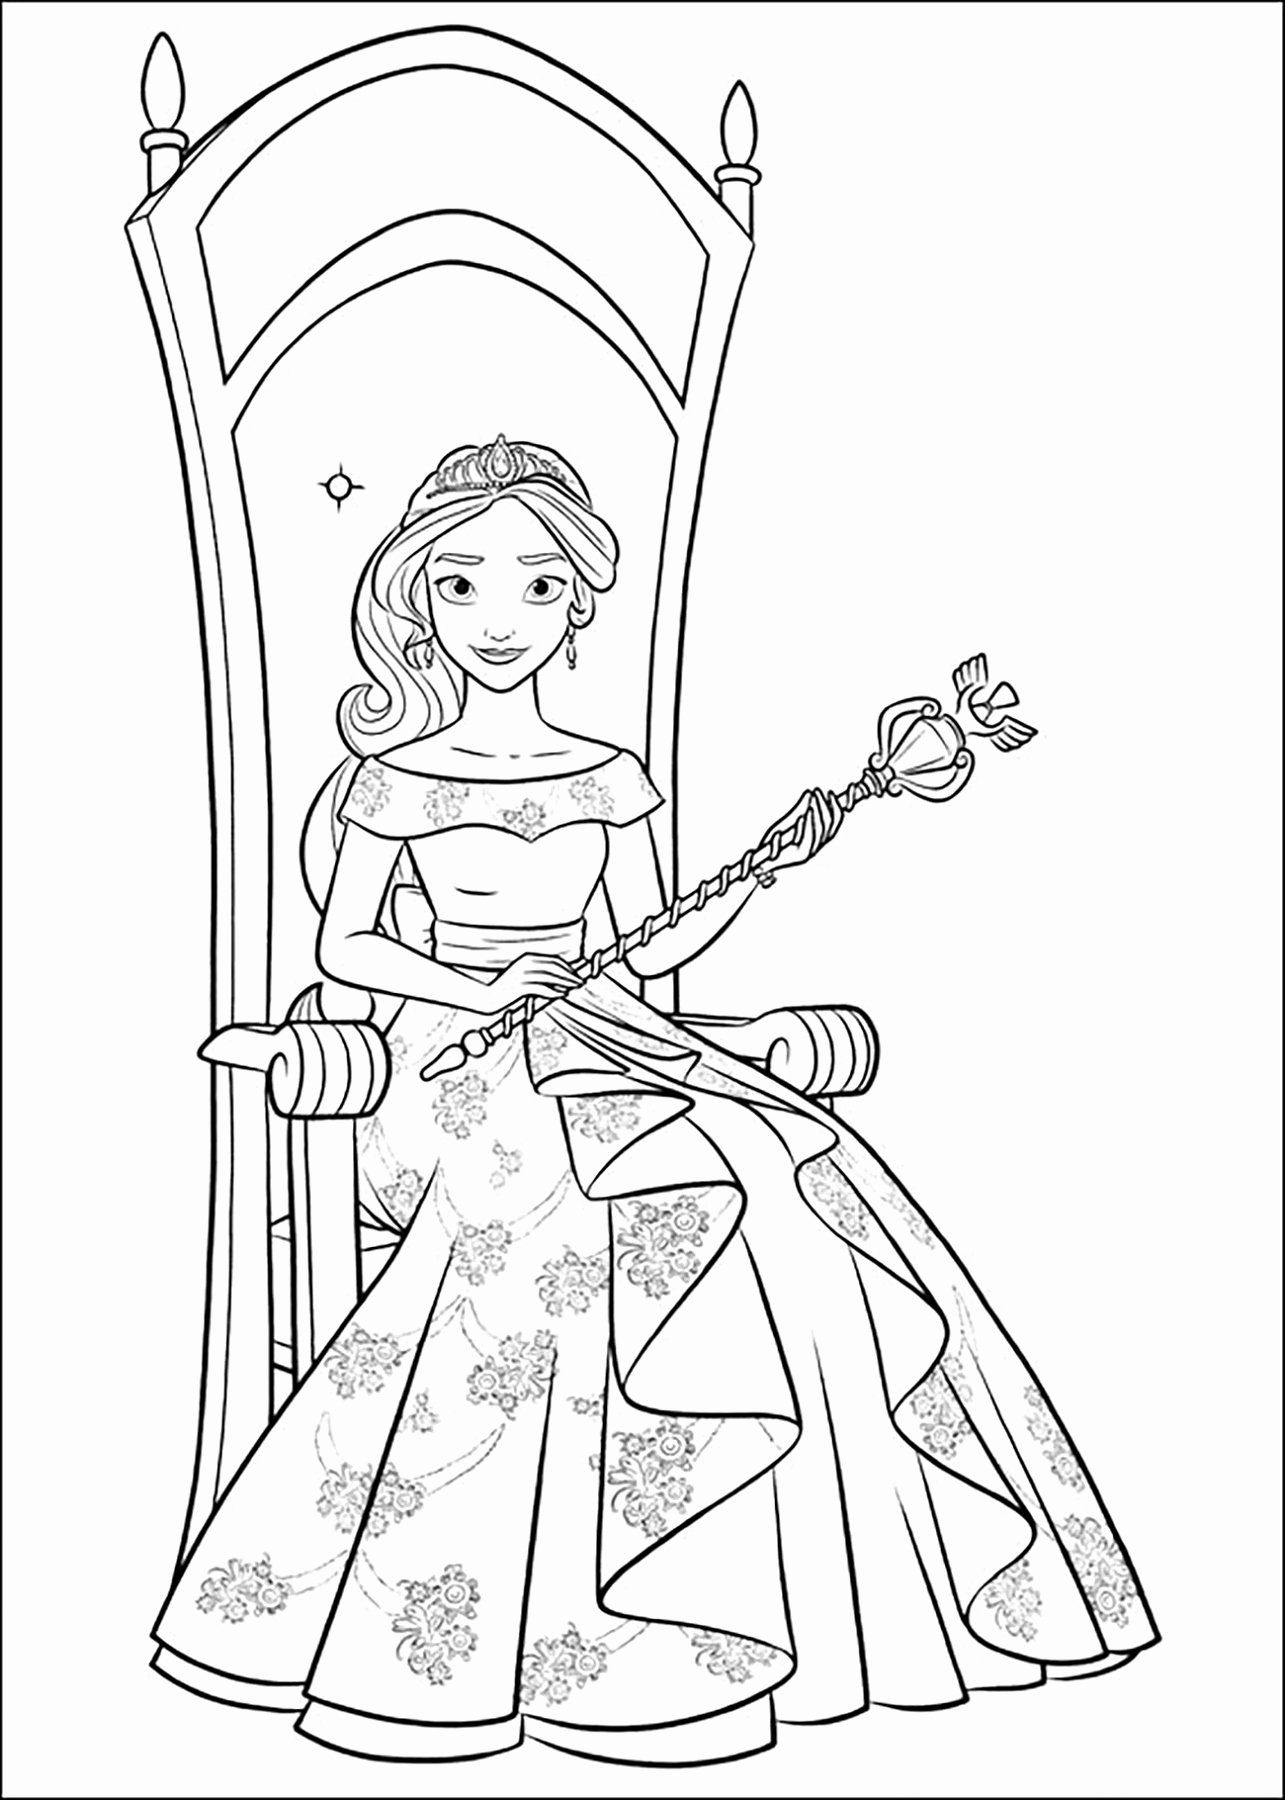 Elena Of Avalor Coloring Pages Printable Best Of Coloring Pages Free Printable Coloring El In 2020 Princess Coloring Pages Disney Coloring Pages Cartoon Coloring Pages